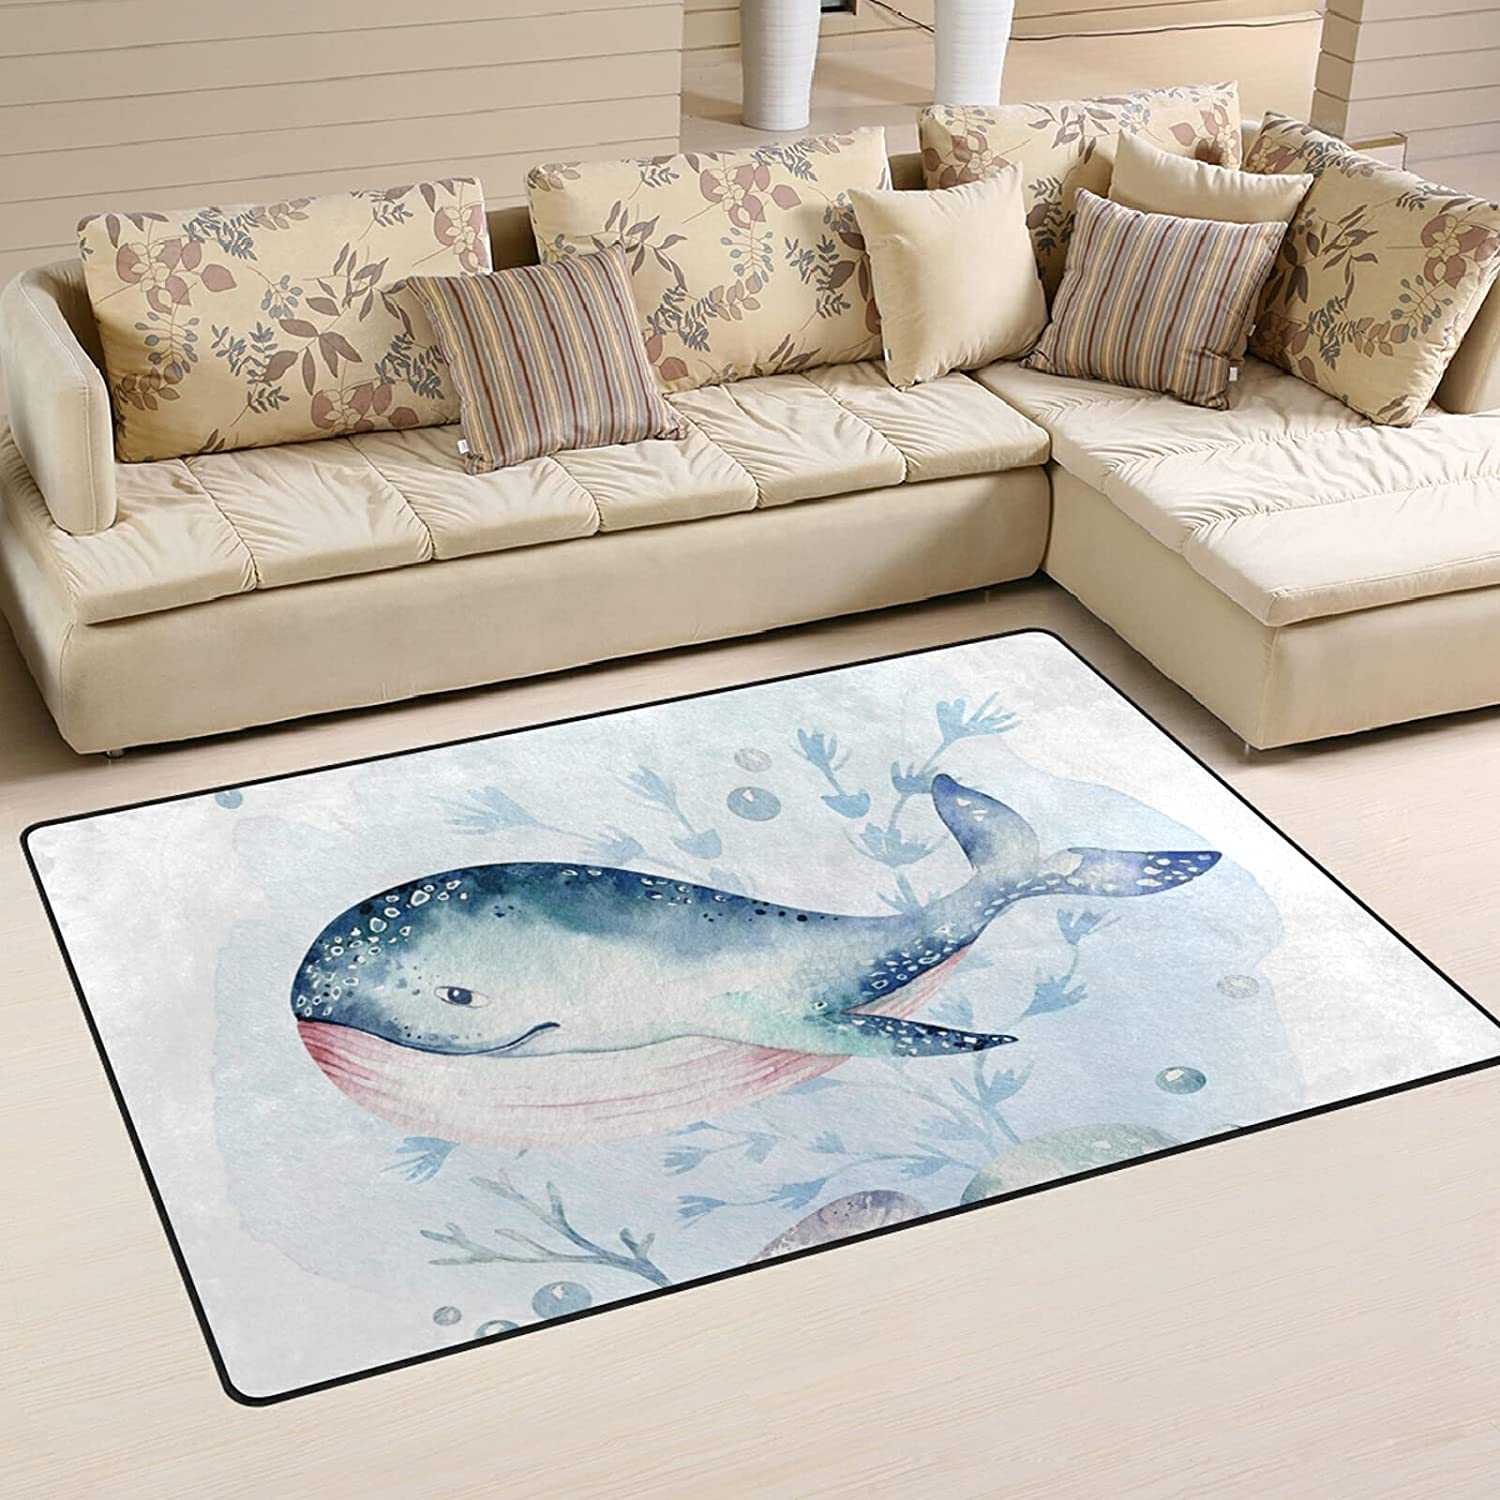 Whale and Coral Large Soft Area Sale item Nursery 70% OFF Outlet Playmat Mat Rugs Rug for